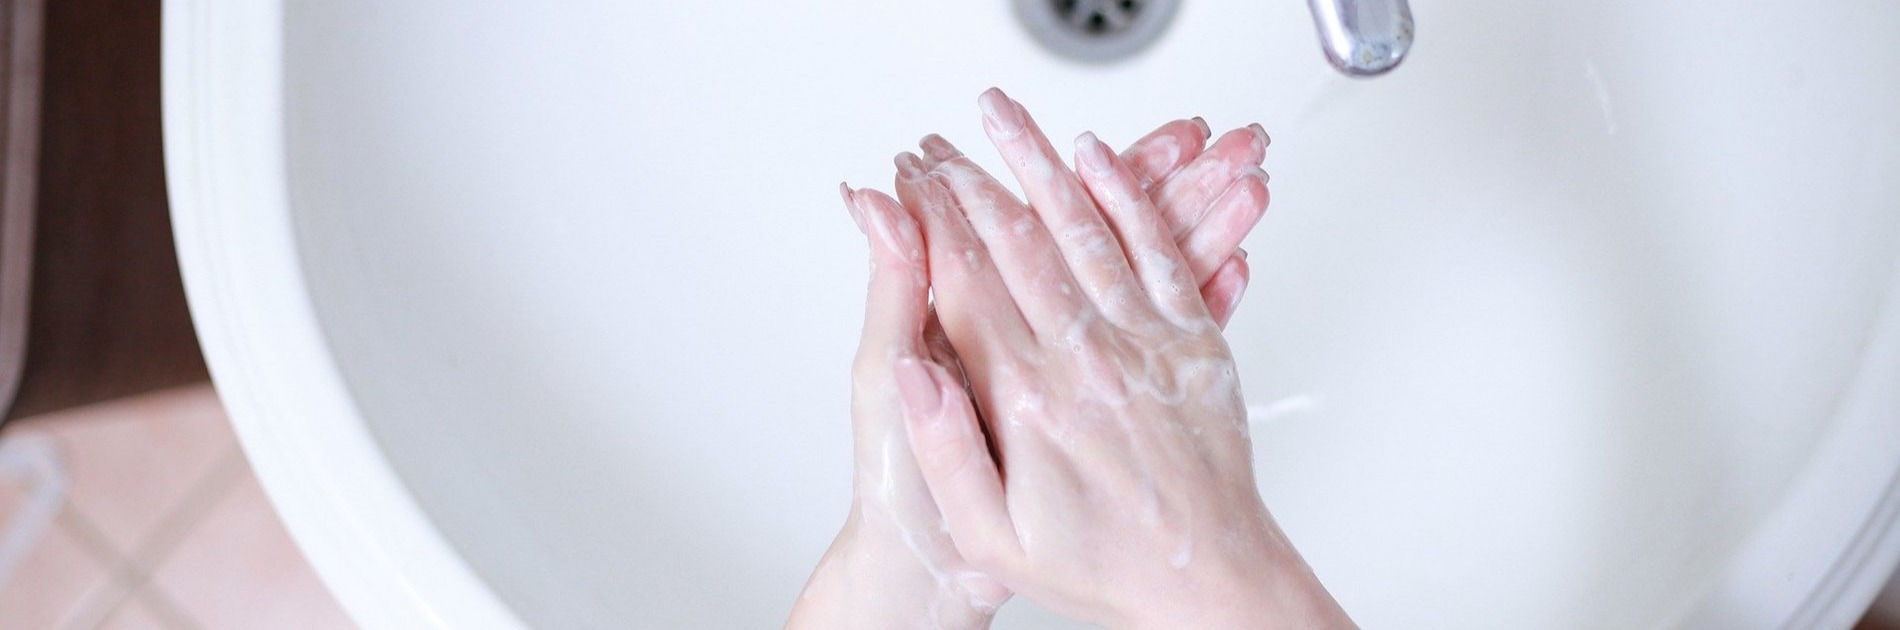 The Handwashing/Sanitizing Dilemma